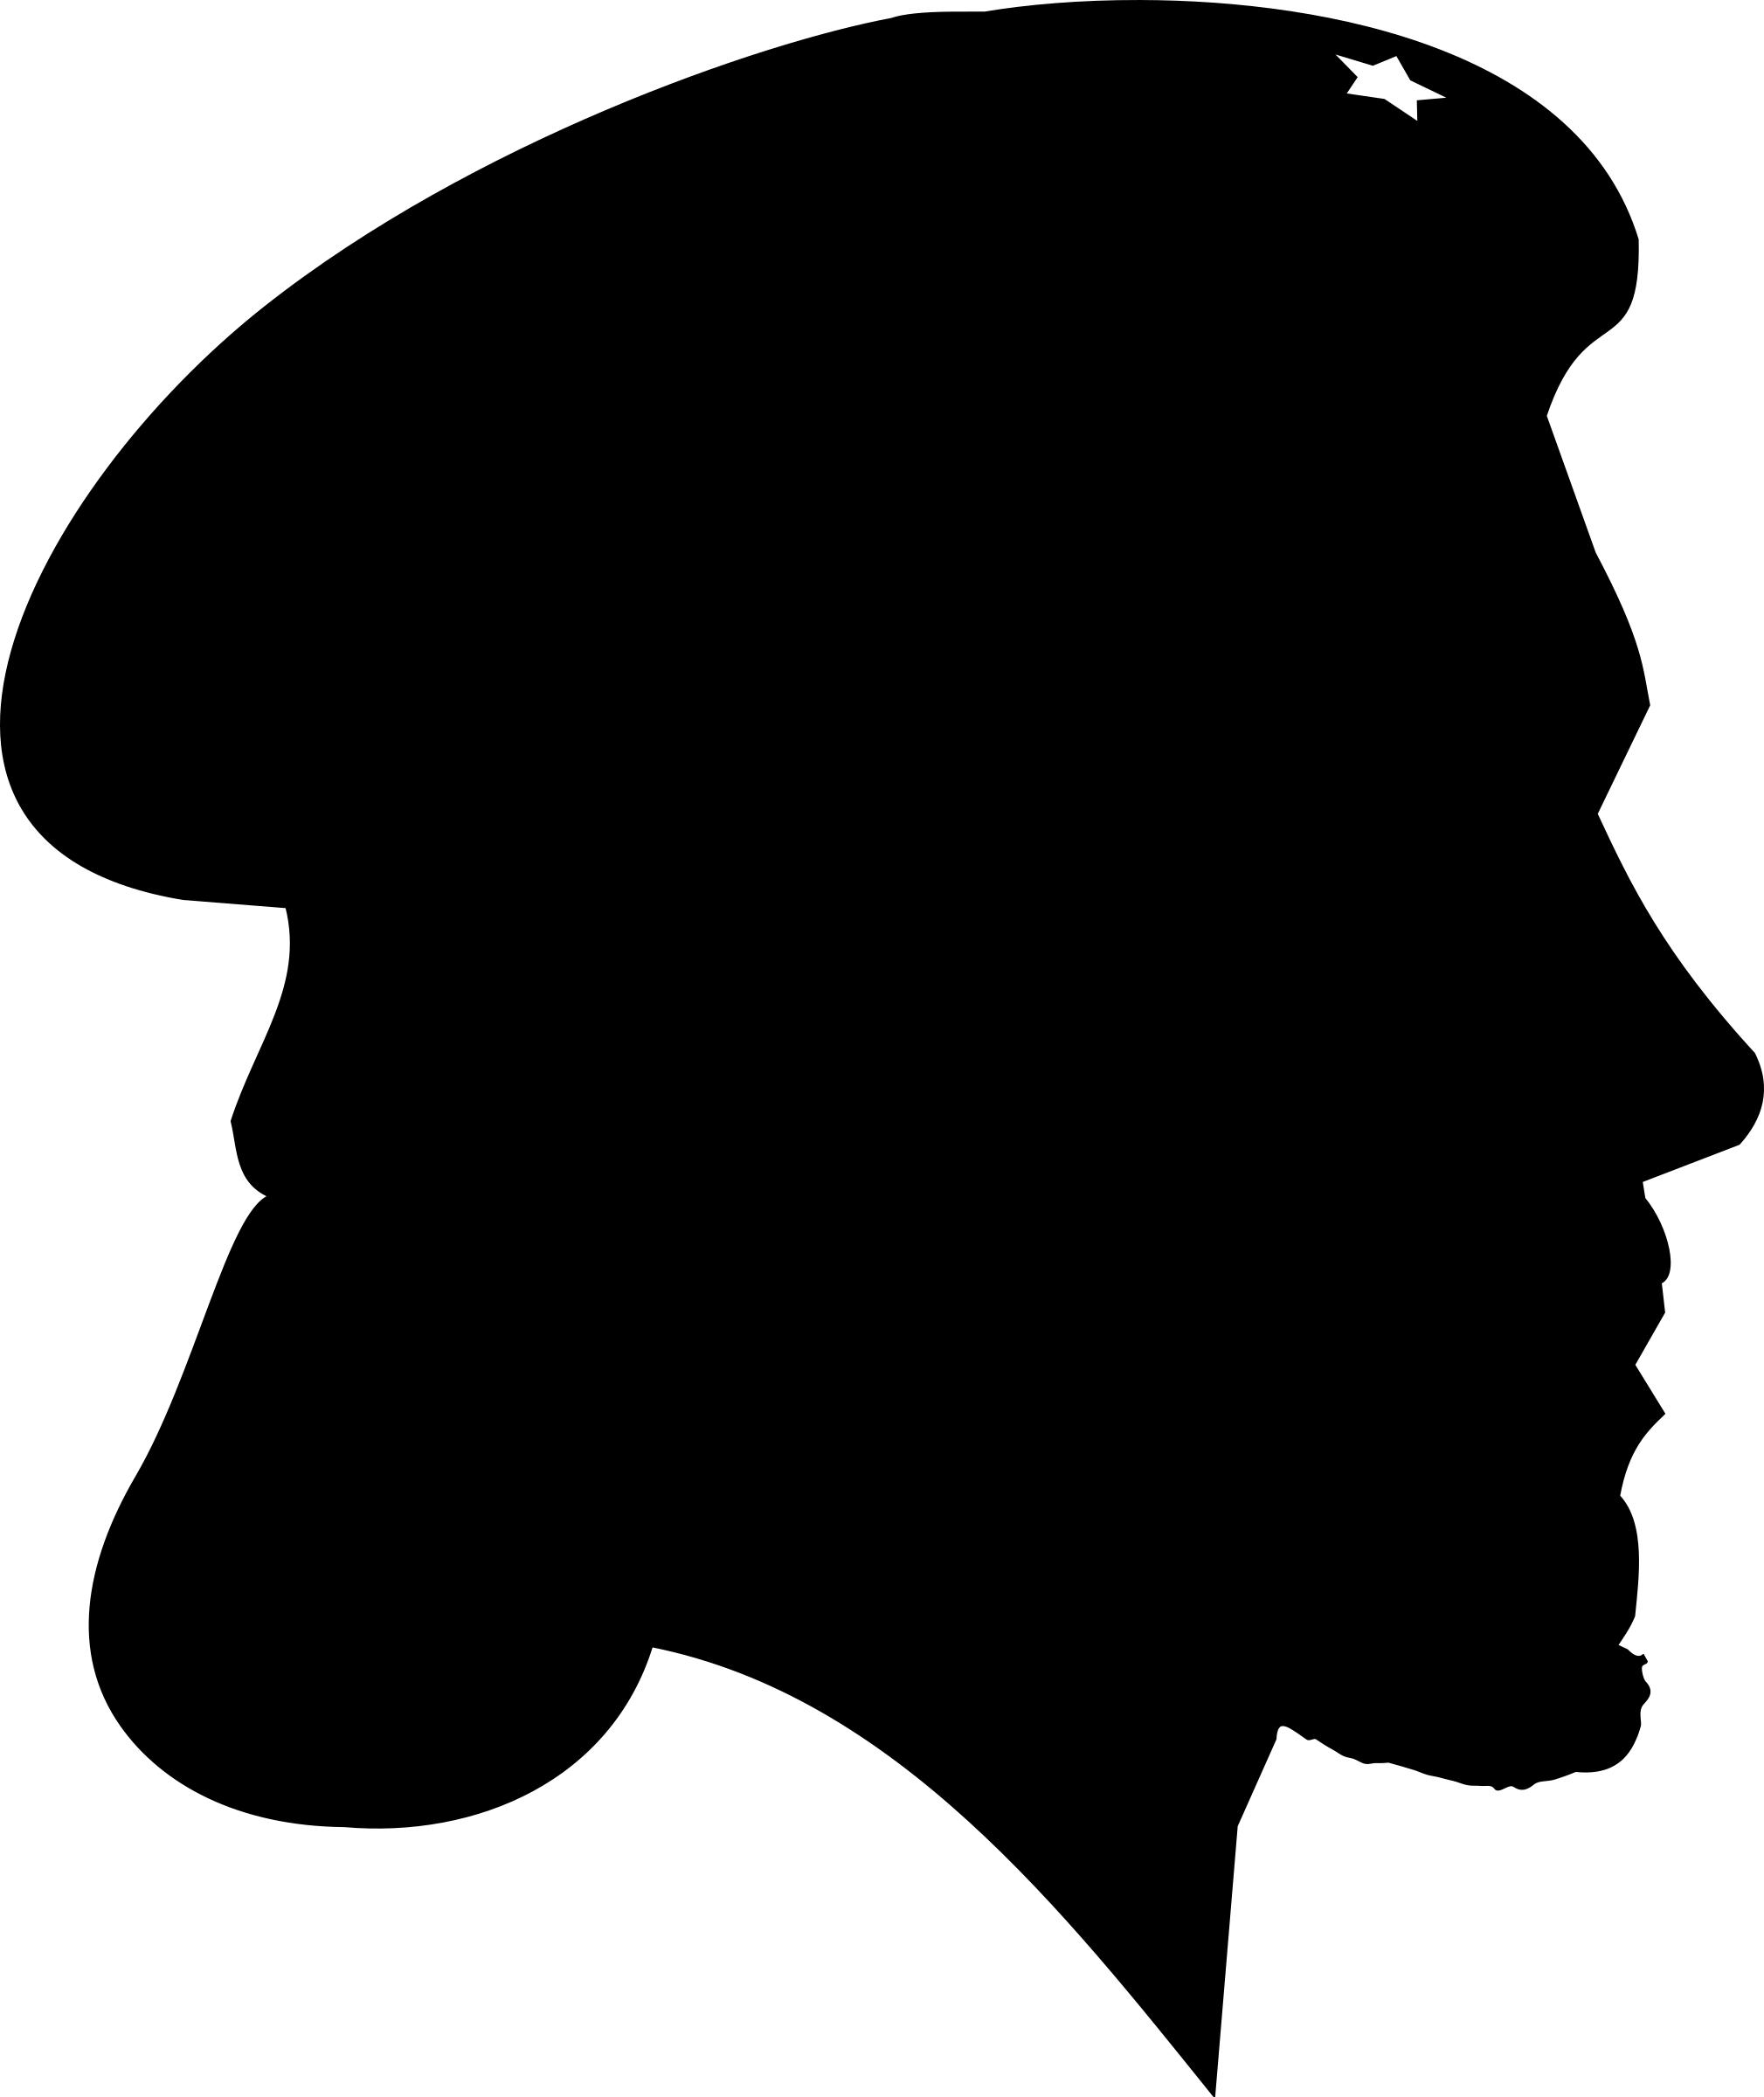 2019x2400 Revolutionary Silhouette Profile Icons Png